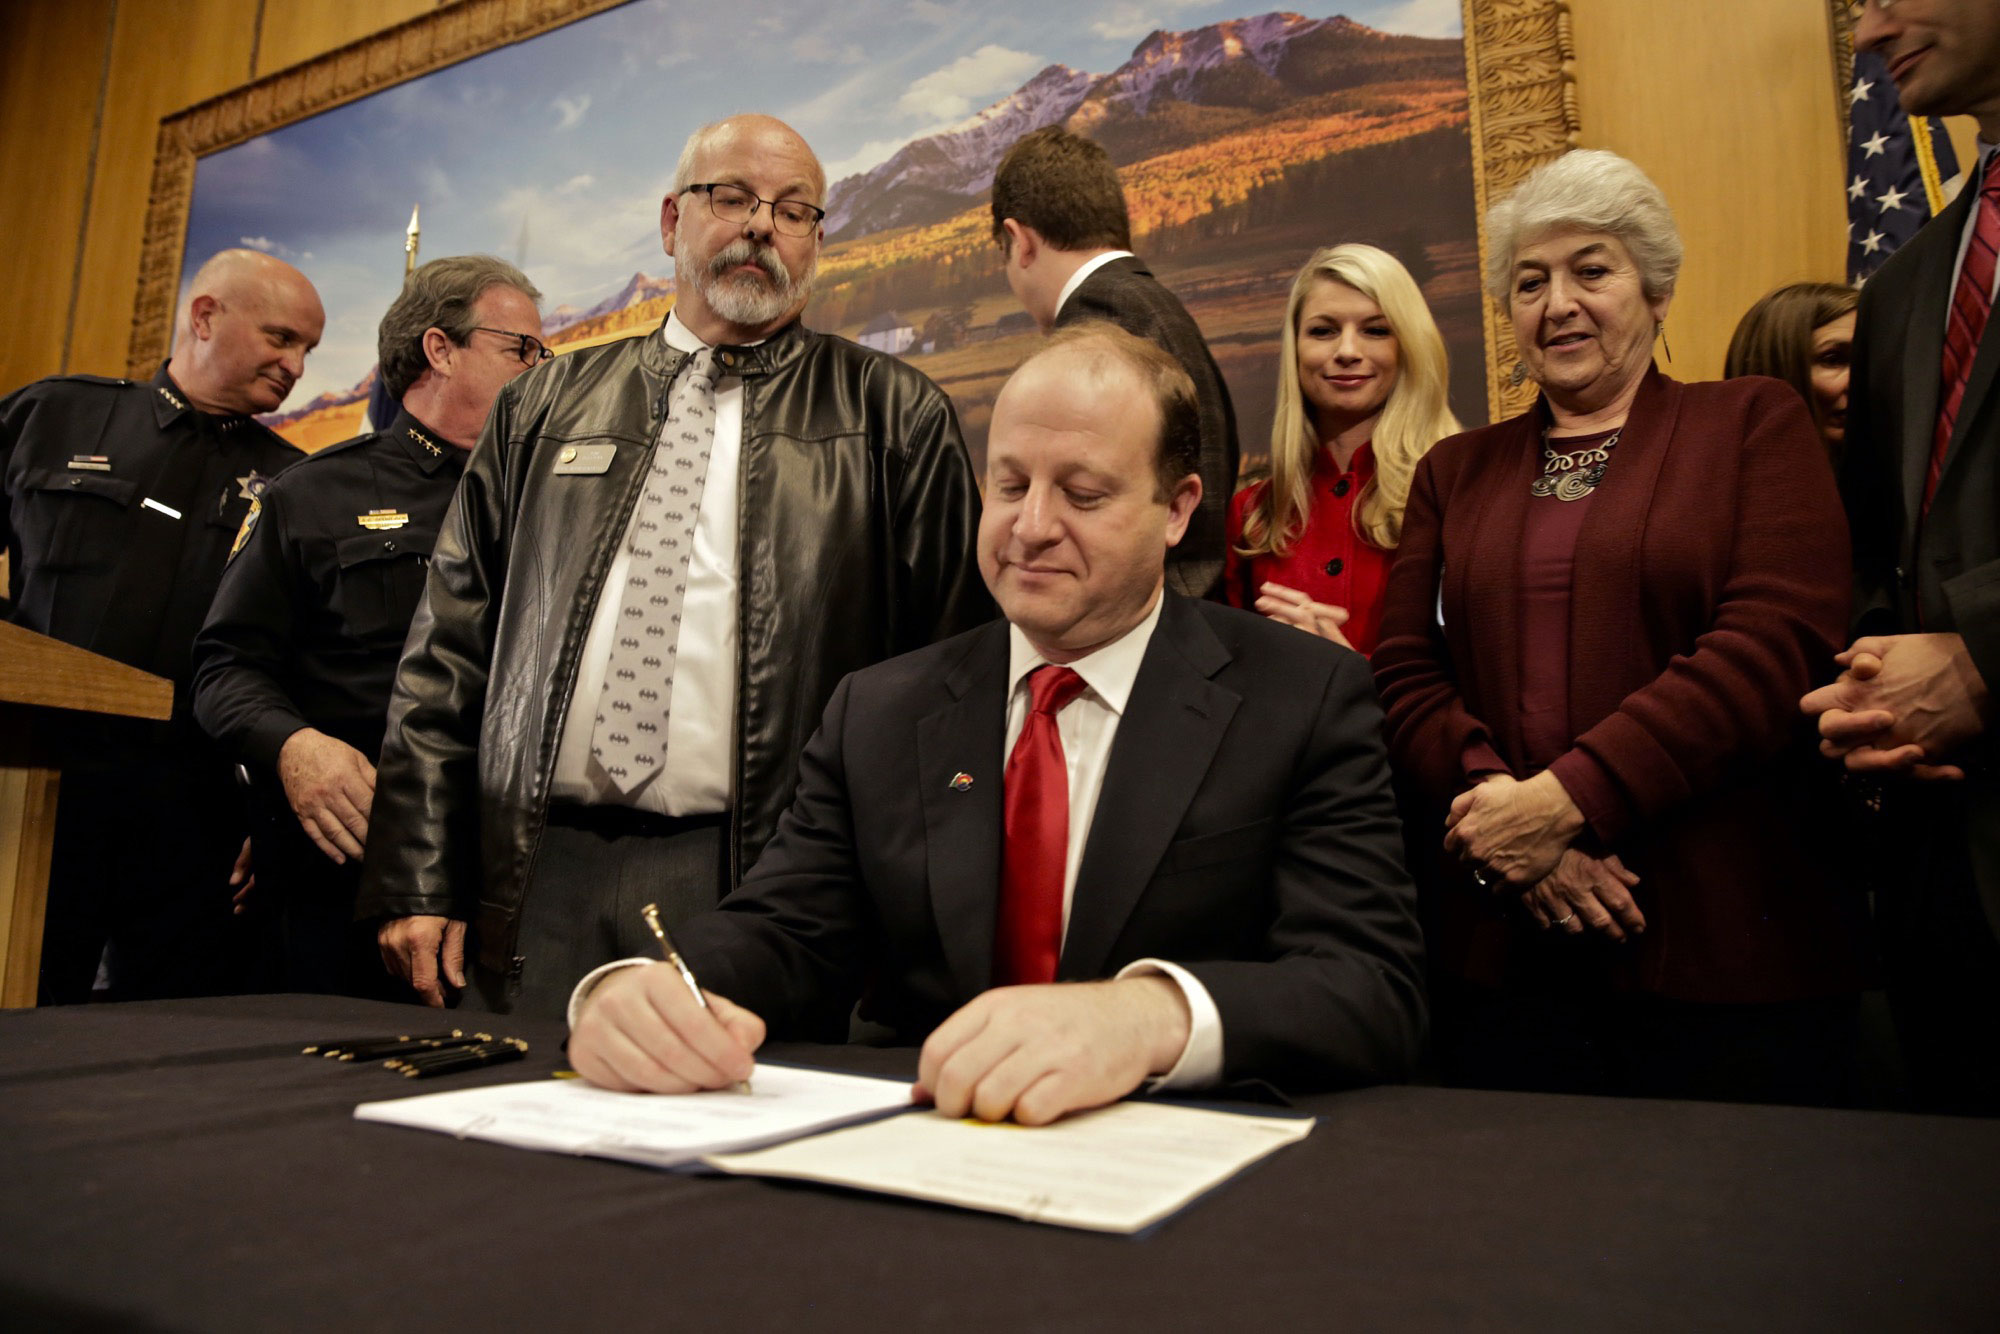 "<p>As state Rep. Tom Sullivan looks on, Colorado Gov. Jared Polis signs into law HB 1177 Friday, April 12, 2019, making Colorado the 15th state in the country to have a so-called ""red flag"" gun law. Sullivan was elected in November and was one of the bill's sponsors. He got involved in politics after his son Alex was killed in the Aurora Theater shooting.</p>"